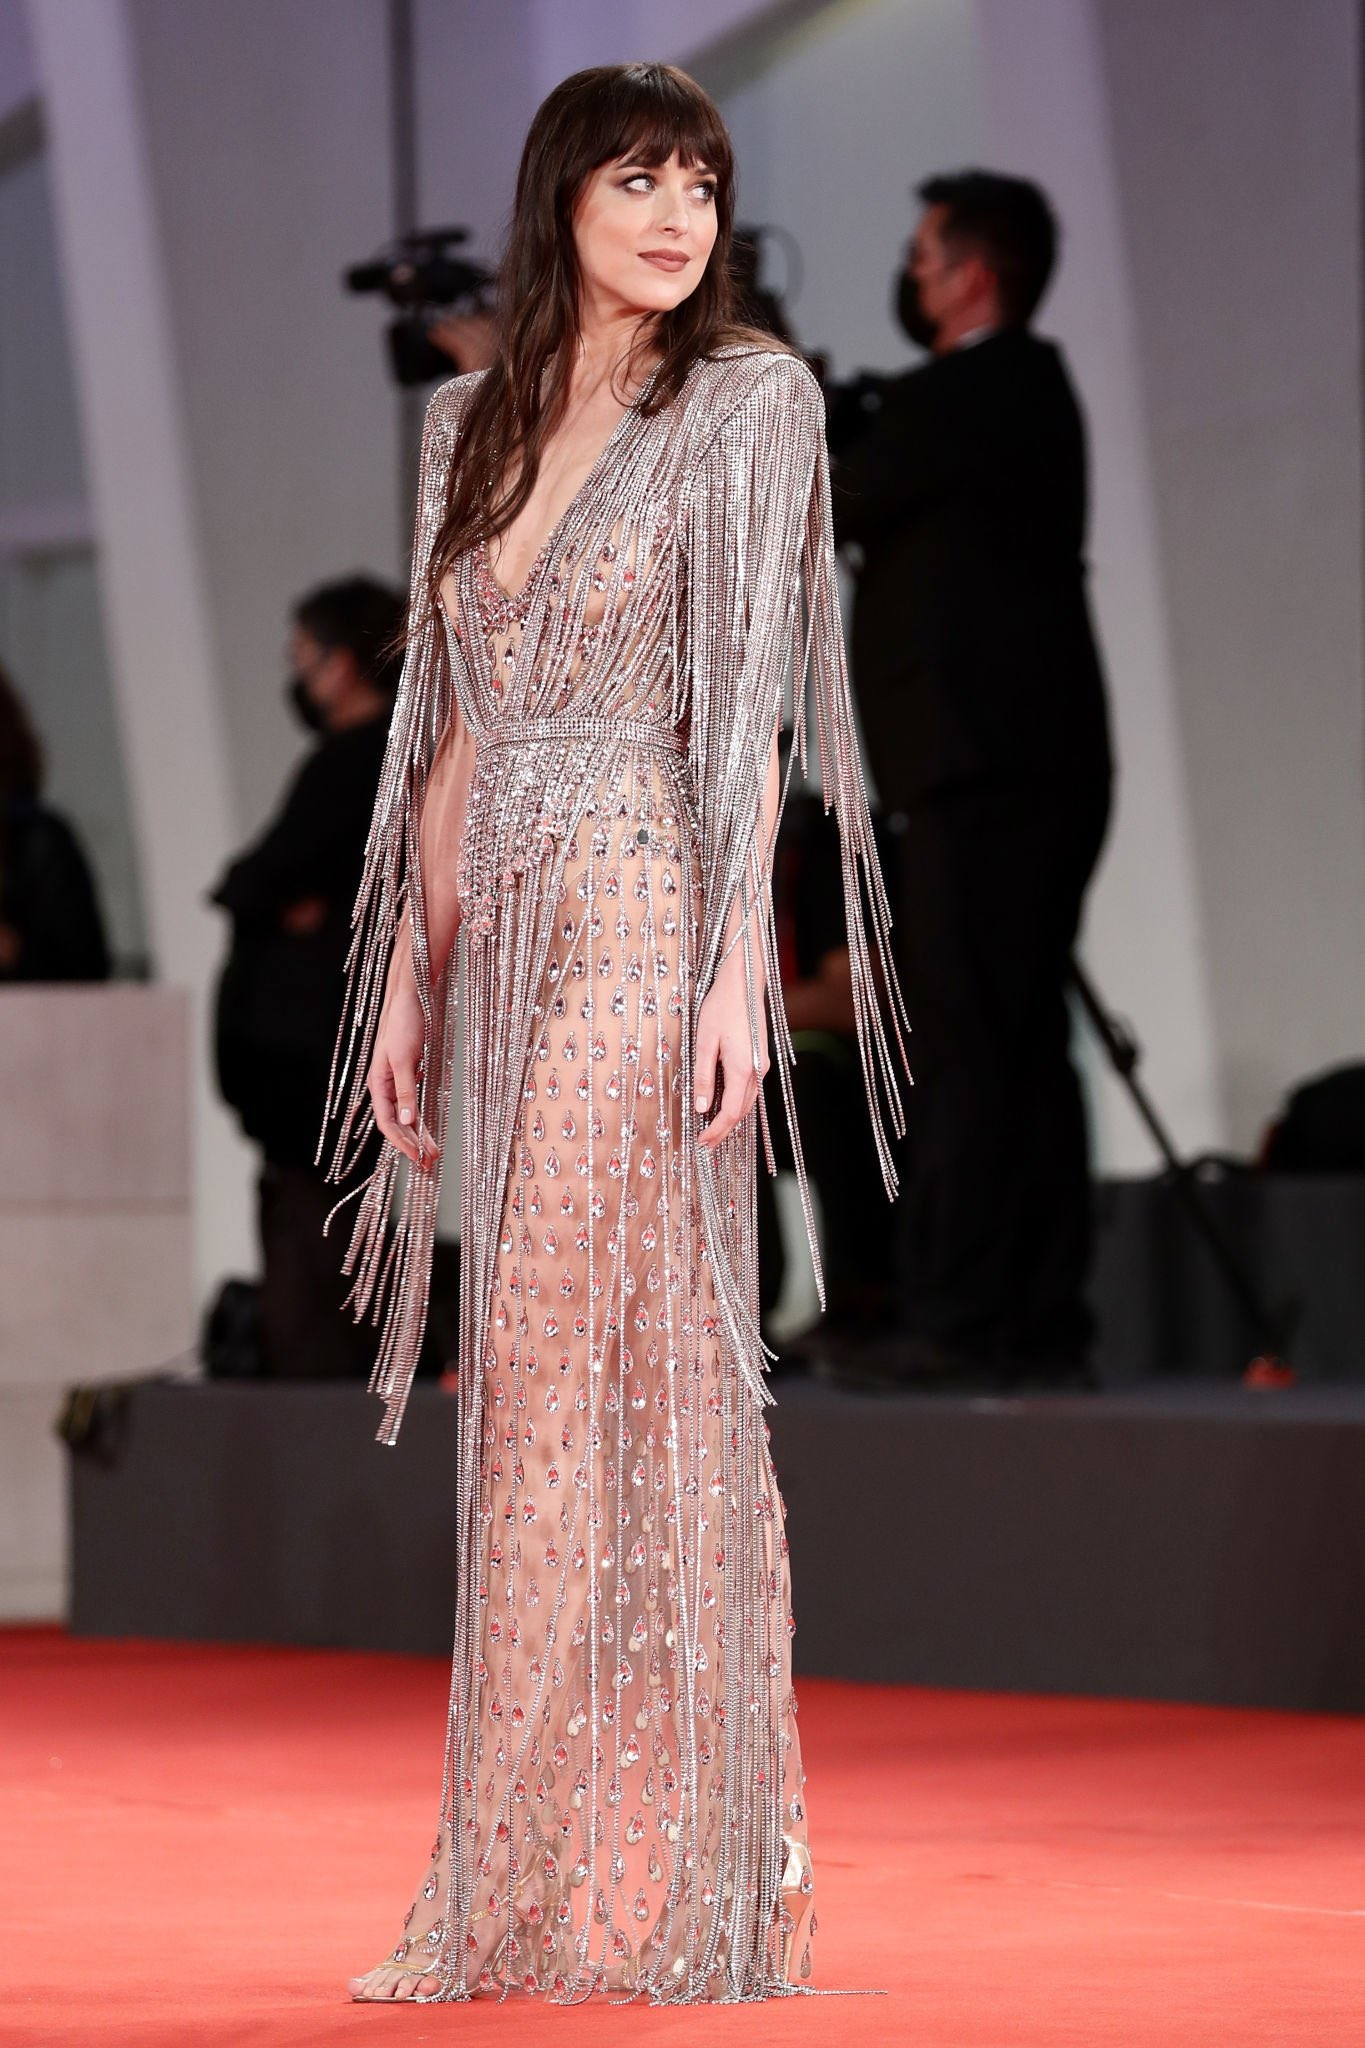 """Dakota Johnson wore a #Gucci fully embellished crystal fringe gown to the premiere of """"The Lost Daughter"""" during the 2021 Venice Film Festival"""